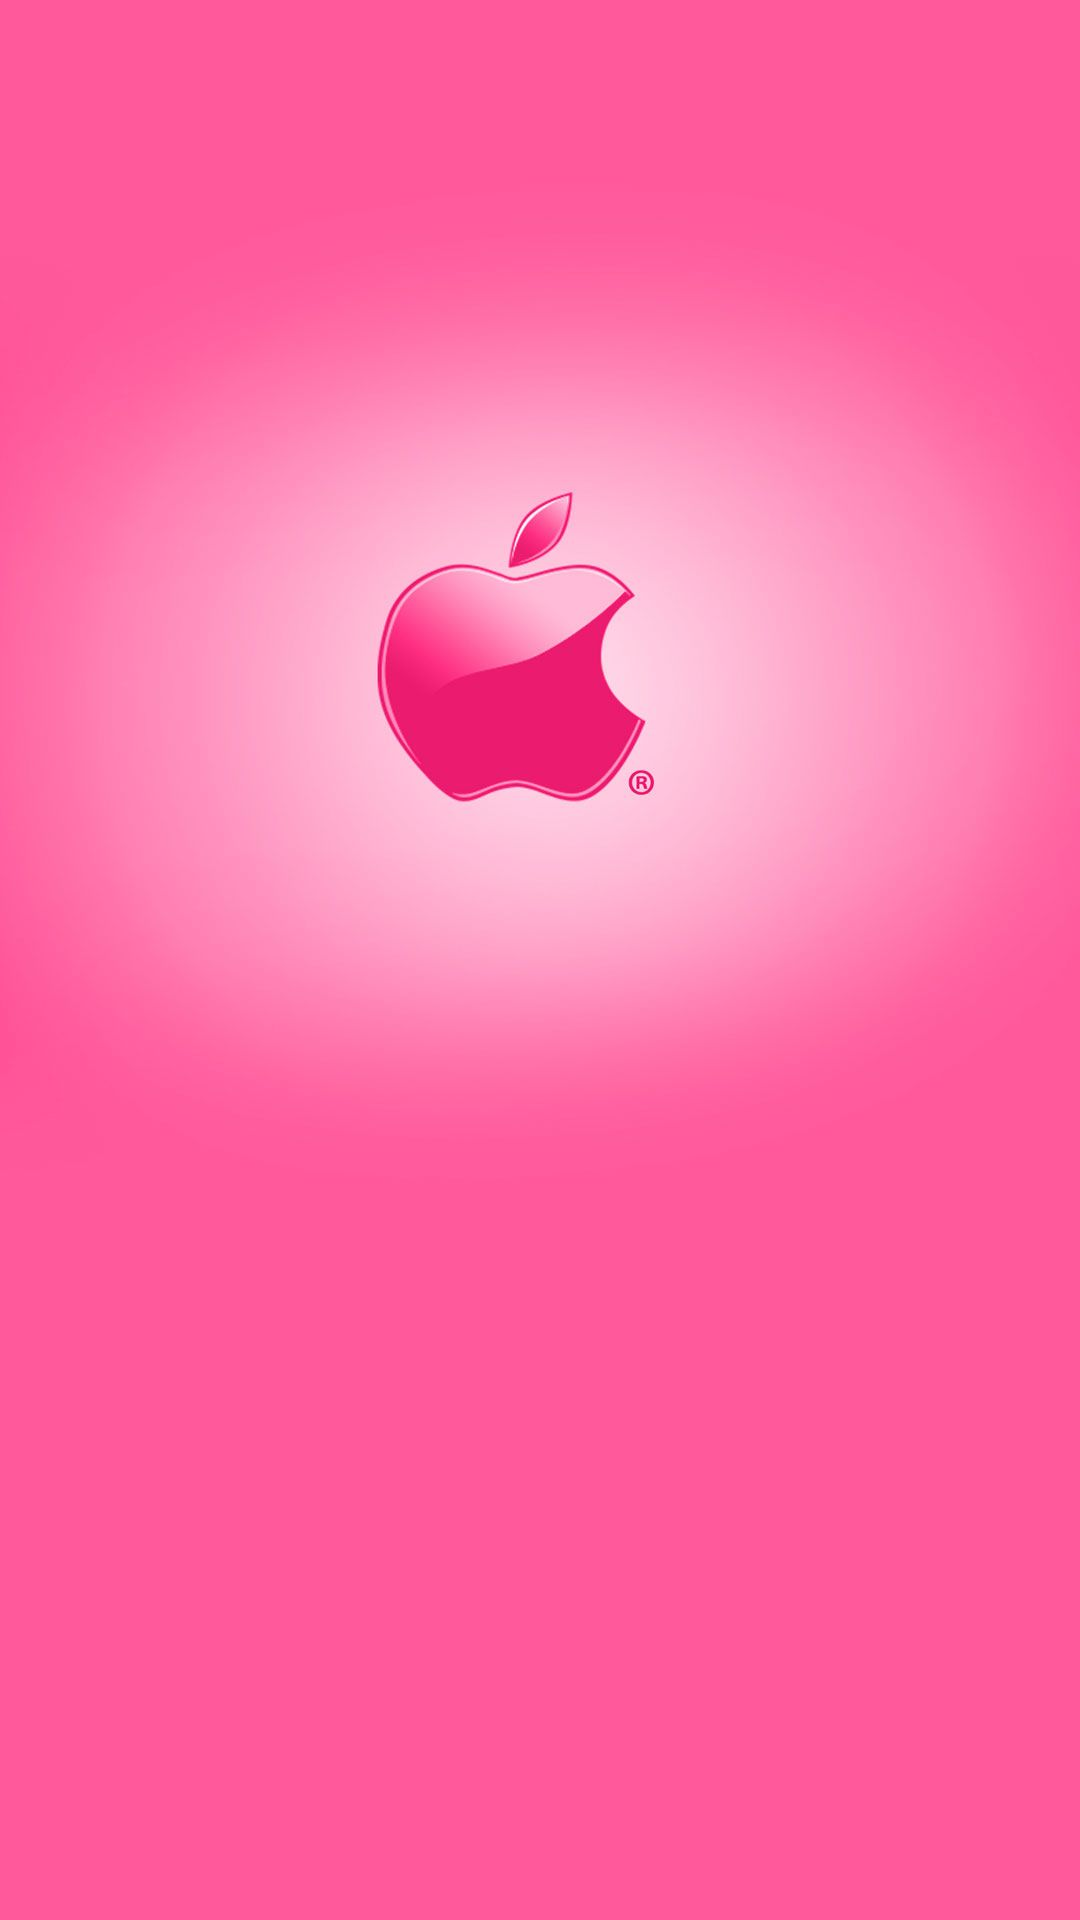 Cute pink Apple Pink wallpaper iphone, Iphone wallpaper